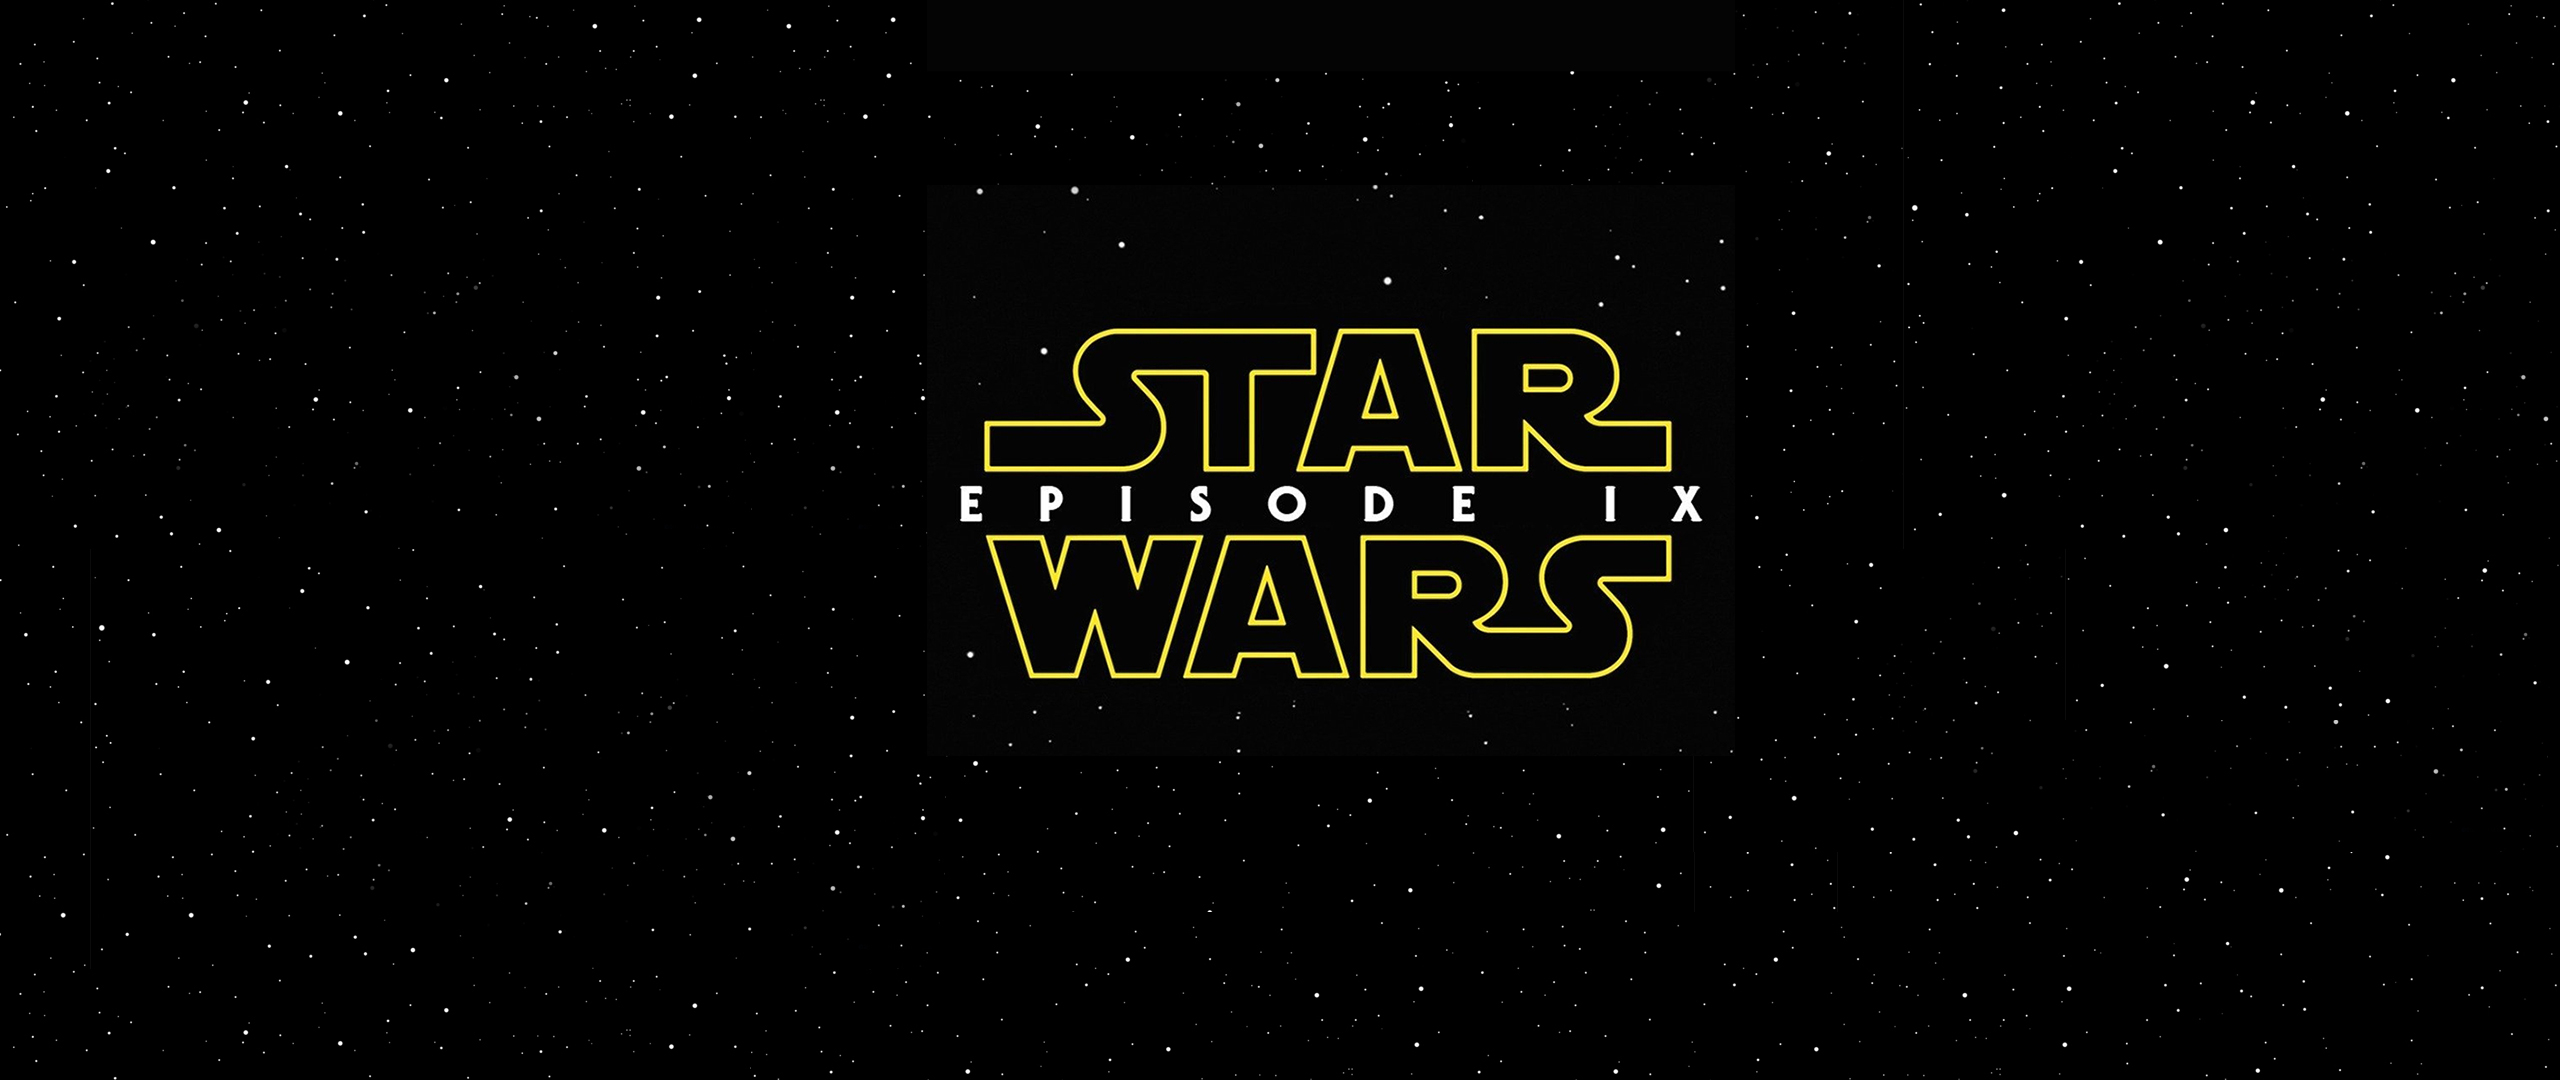 2560x1080 Star Wars Episode 9 2560x1080 Resolution Wallpaper Hd Movies 4k Wallpapers Images Photos And Background